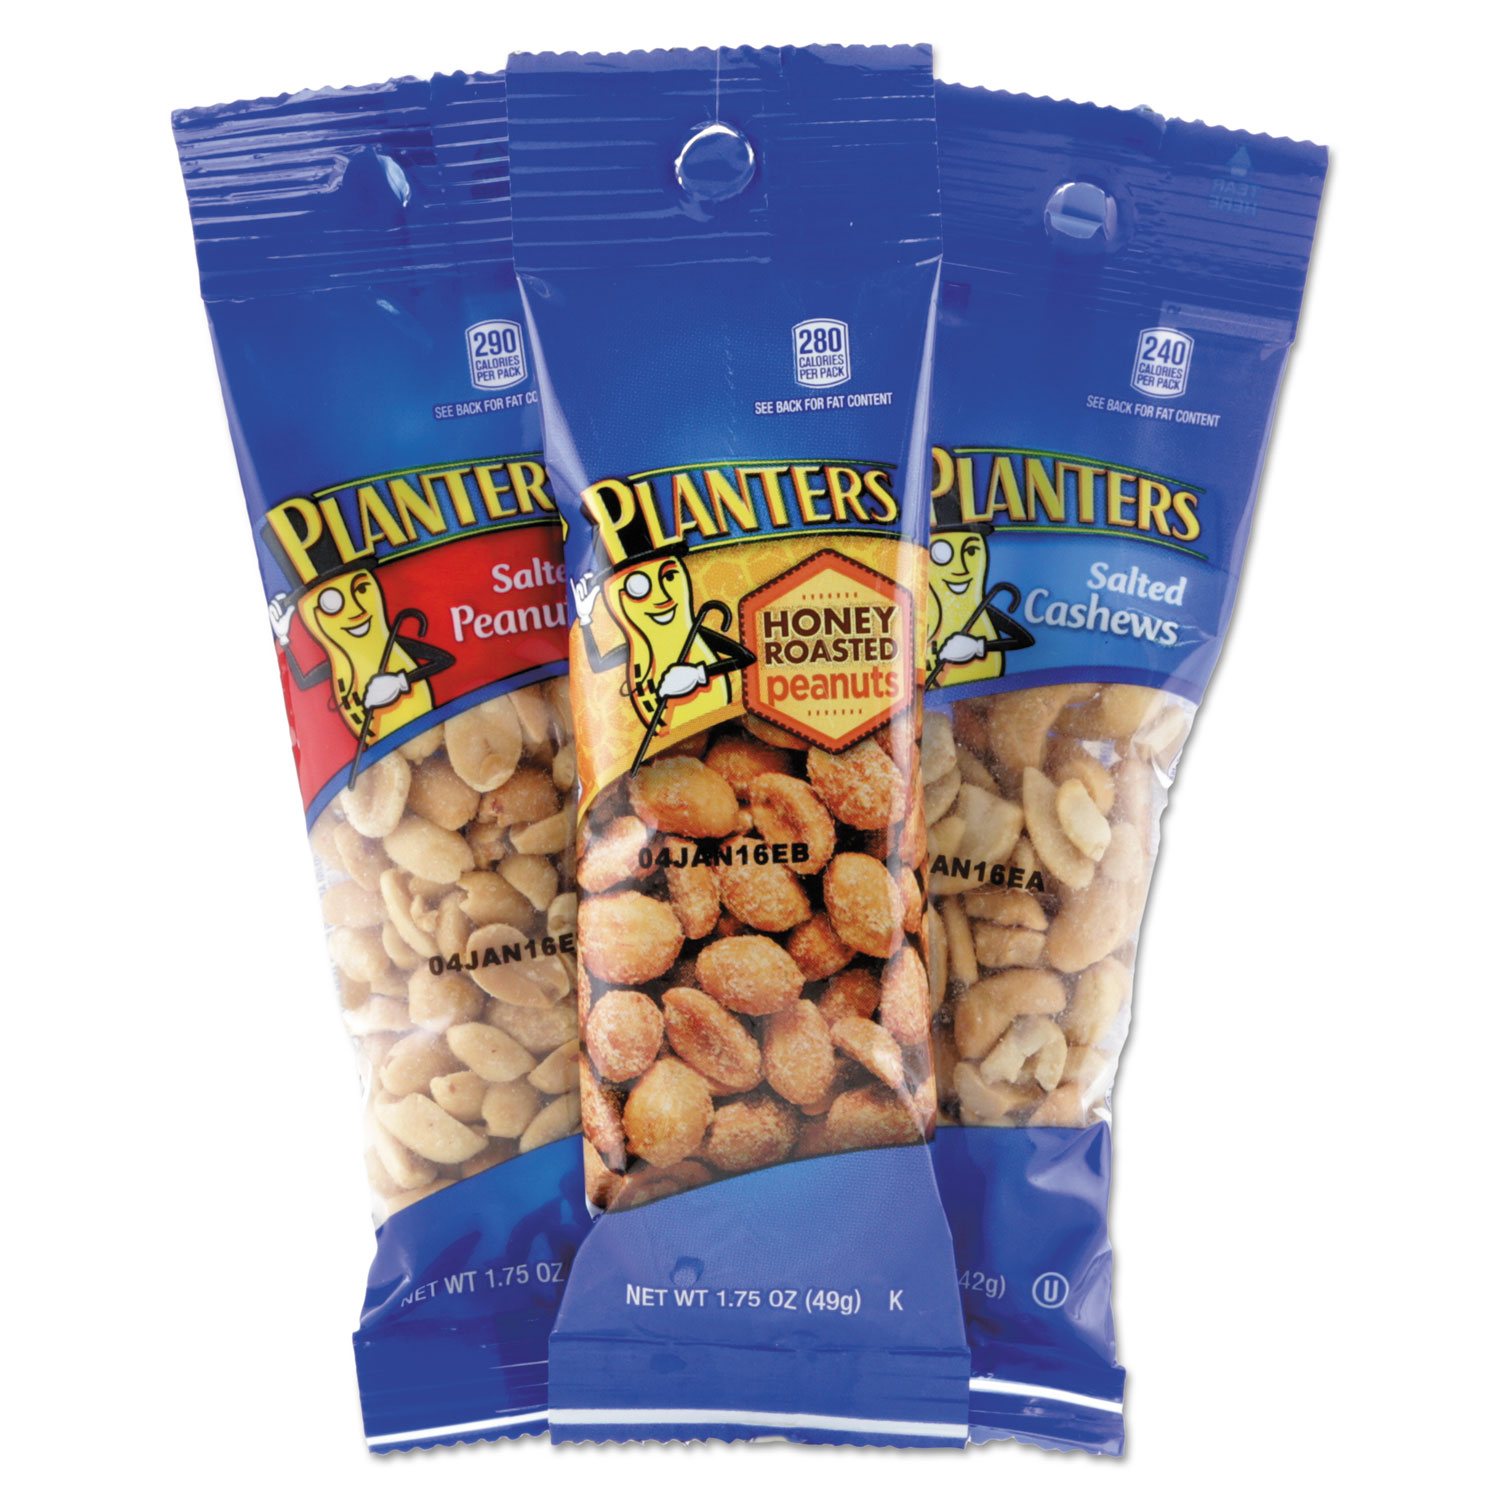 planters nuts with Ptn884624 Variety Pack Peanuts And Cashews 175 Oz 15 Oz Bag 24 Box on puter Frustration Sculpture in addition 53 together with Planters Corn Nuts Corn Gone Wrong 3274305 together with Taste Test Crunchy Peanut Butter No Stir What Is The Best Skippy Jif additionally Planters Peanut Butter Chocolate Trail Mix Big Bag.